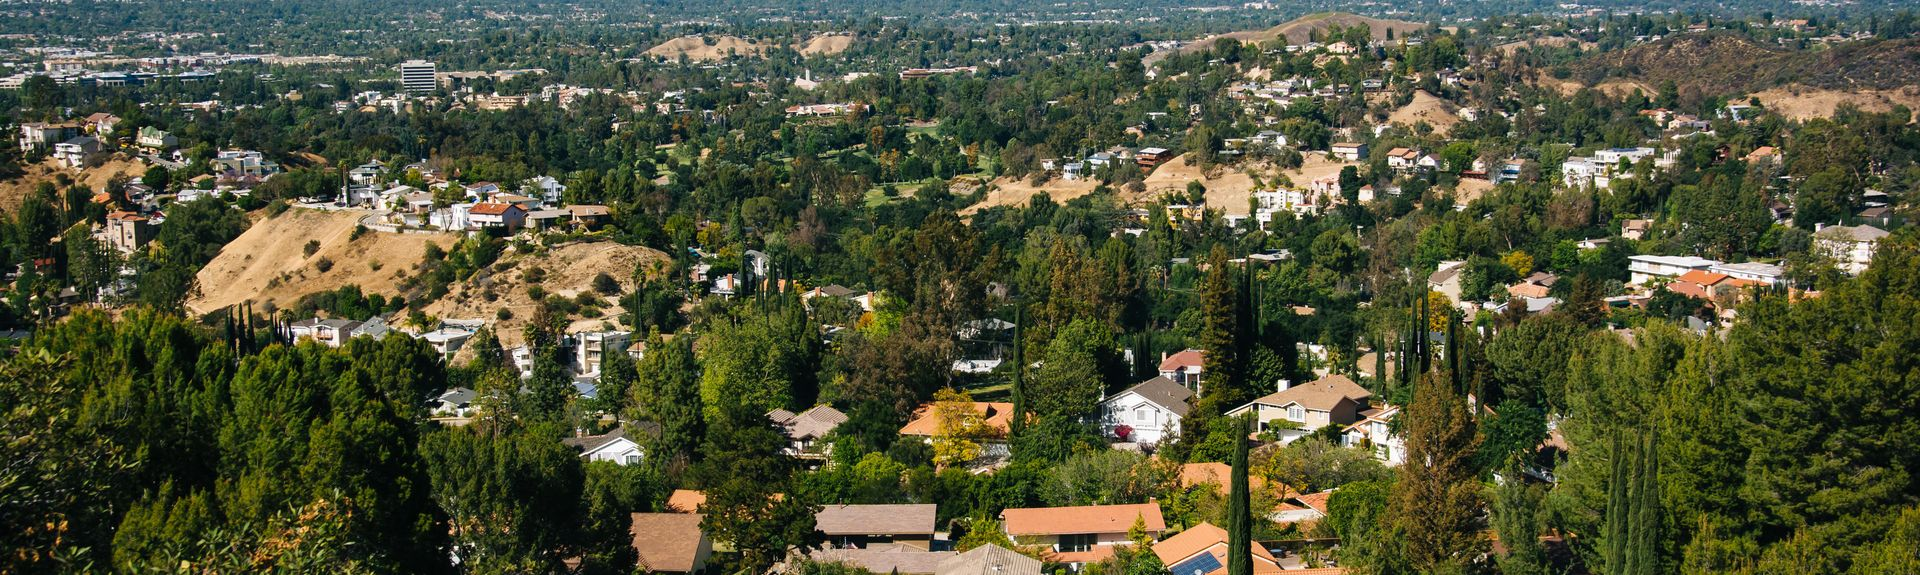 San Fernando Valley, Los Angeles, Californien, USA